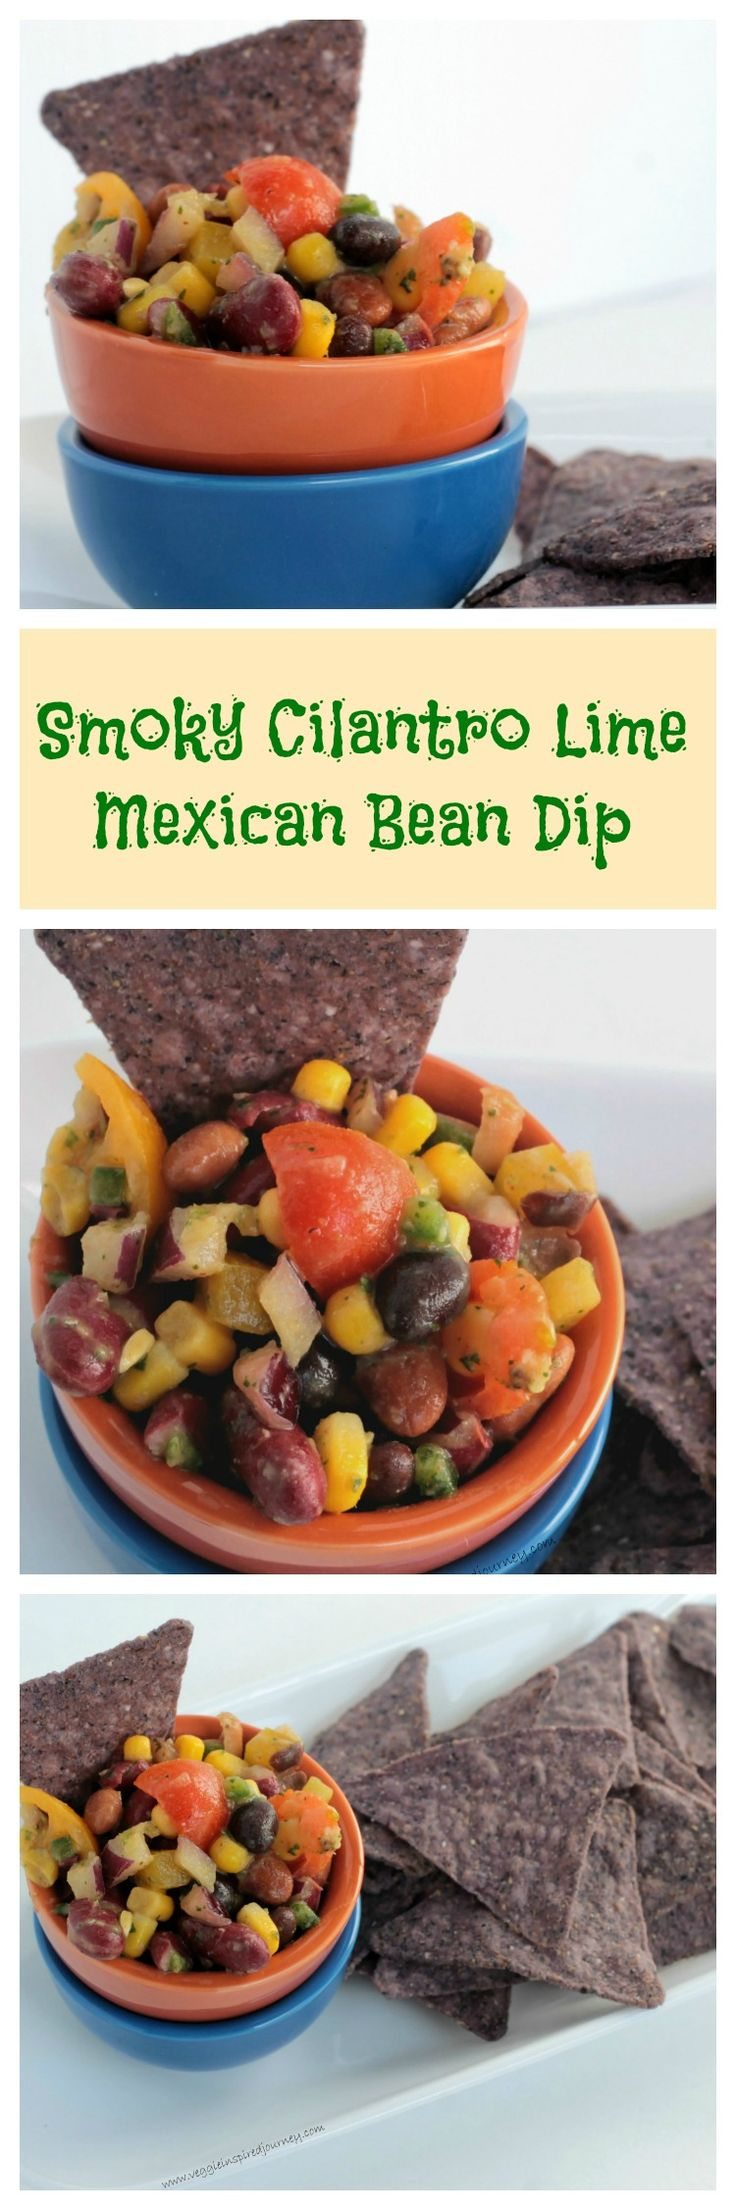 Smoky Cilantro Lime Mexican Bean Dip - hearty, healthy and full of flavor! The perfect dish to bring to a potluck, BBQ or any gathering! As delicious as a salad as it is a dip with chips!